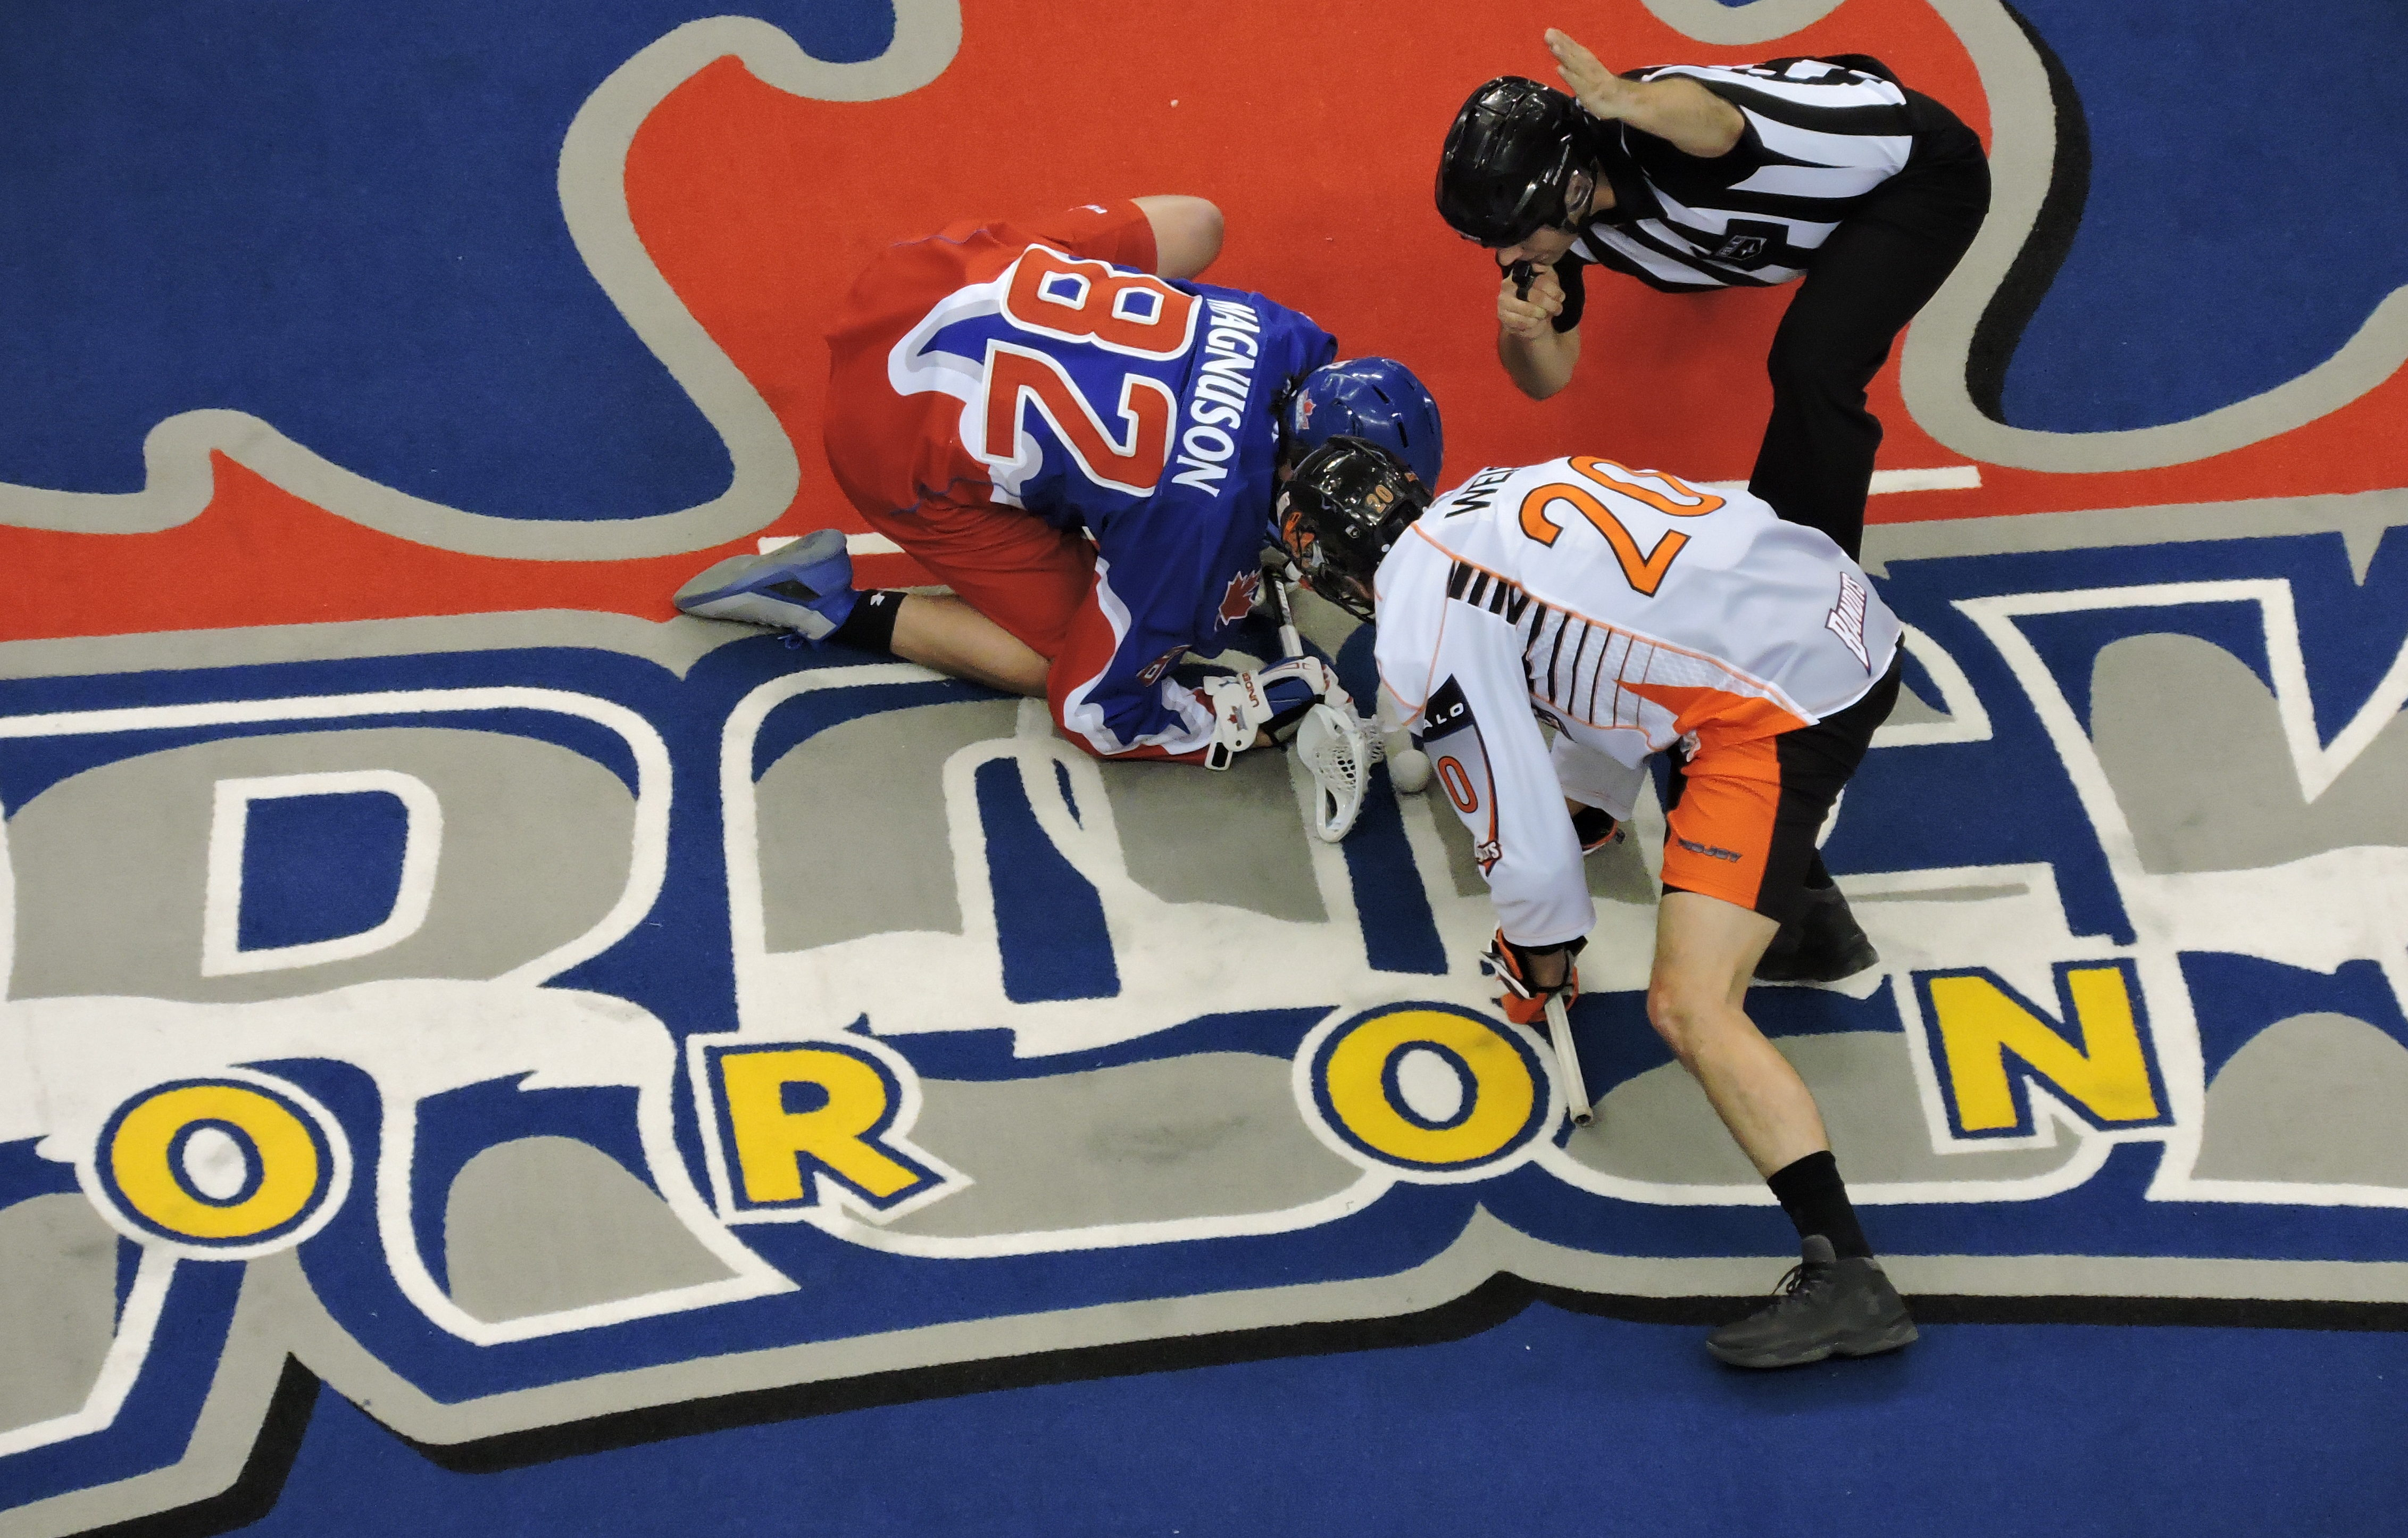 Jordan Magnuson and Nick Weiss face-off as the Toronto Rock host the Buffalo Bandits on April 14, 2017 at the Air Canada Centre. (Photo credit: Anna Taylor)